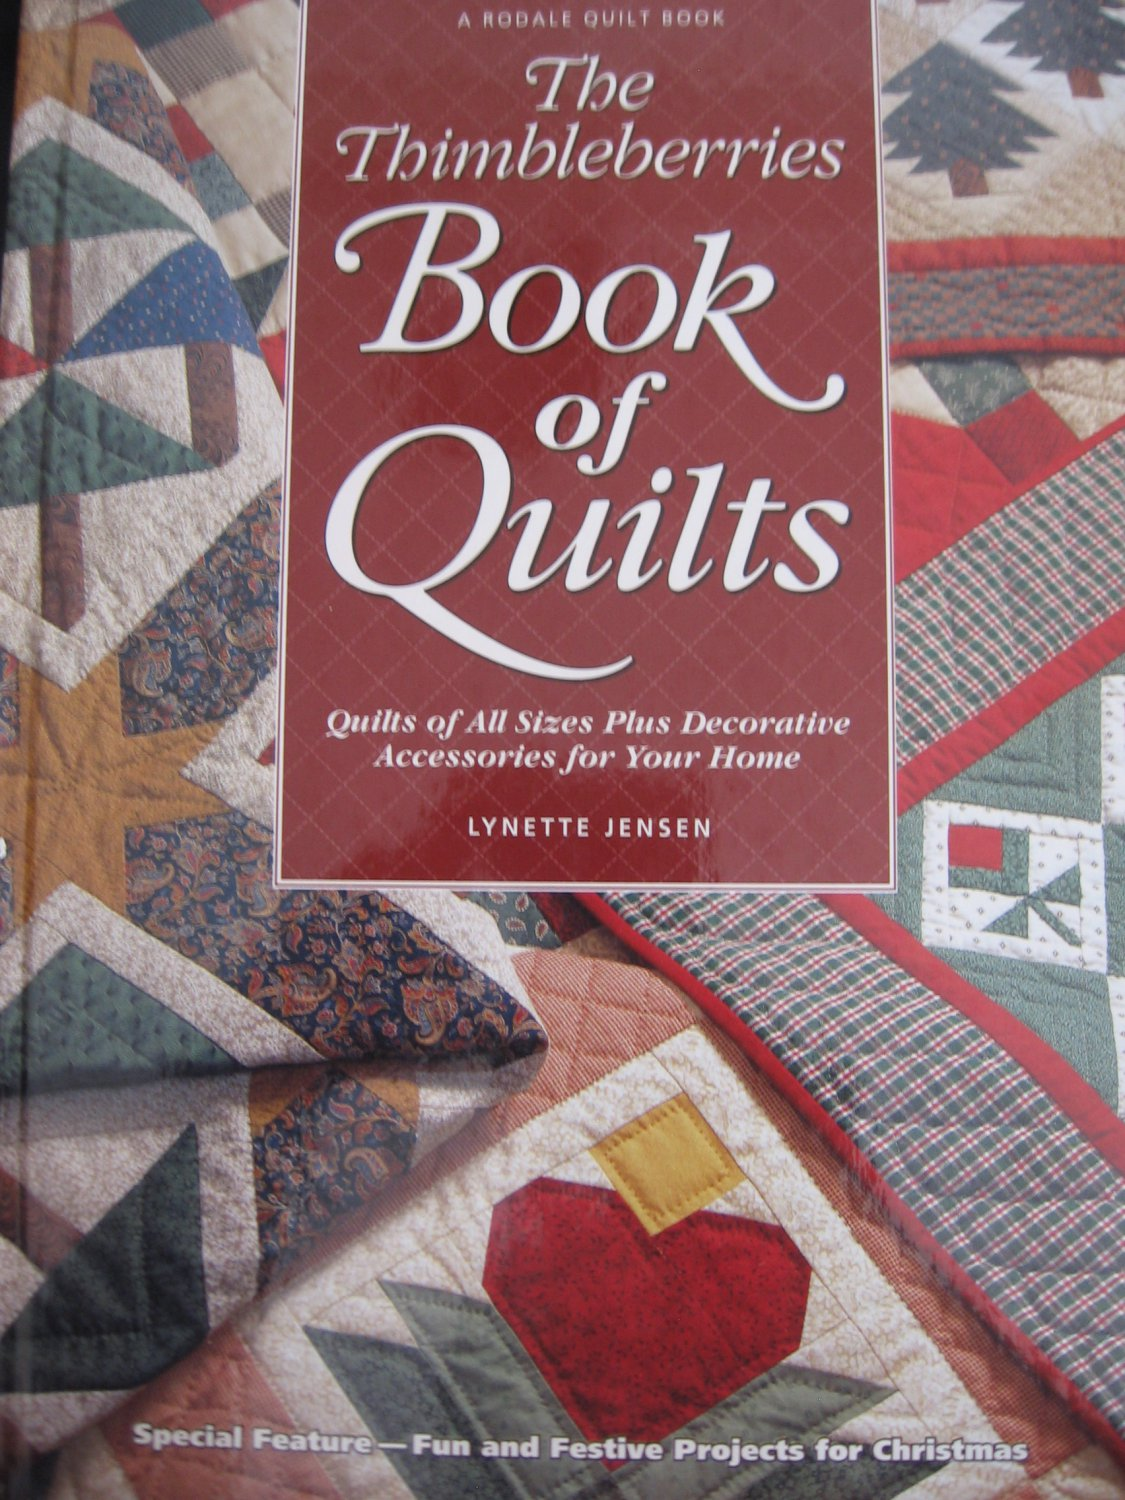 The Thimbleberries Book of Quilts Lynette Jensen